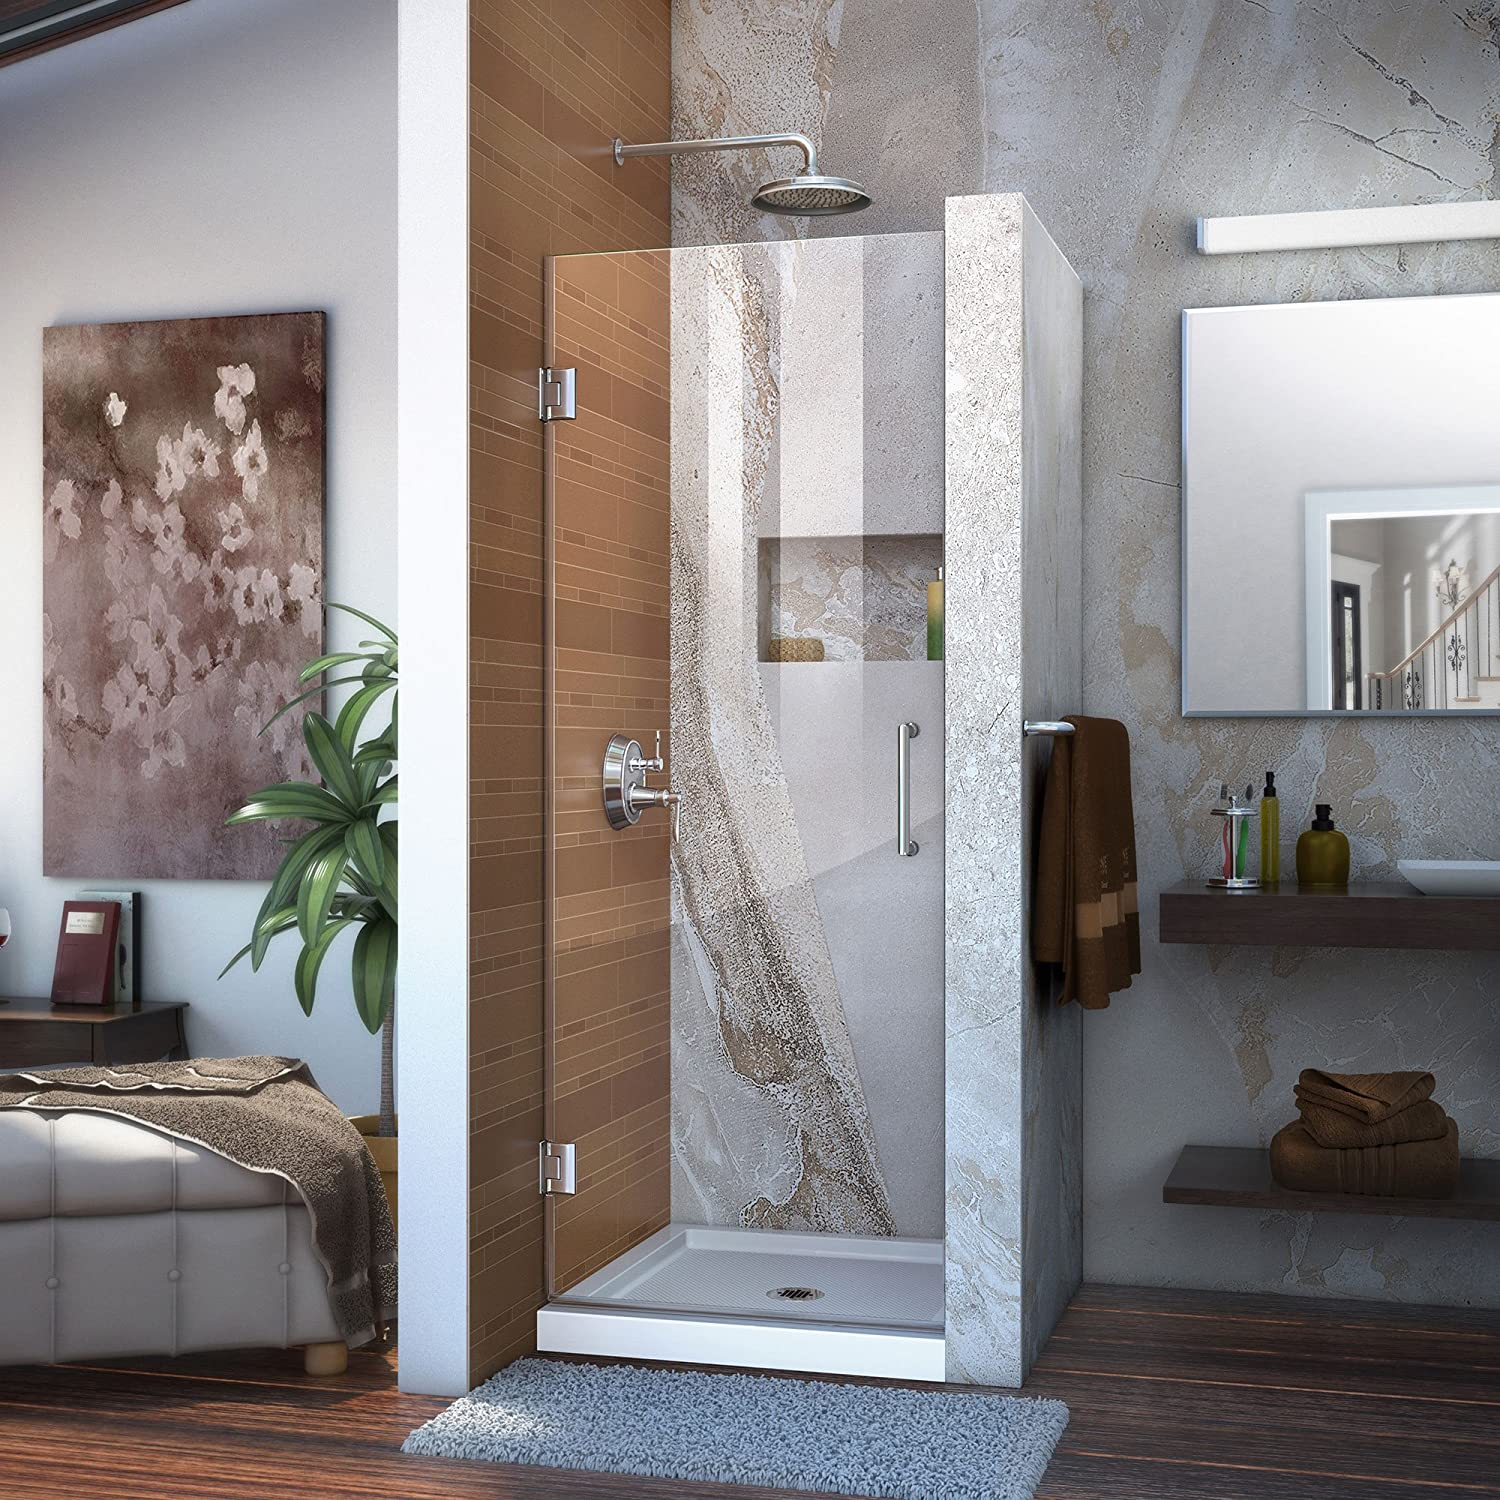 Ove Decors Breeze 36 Shower Kit Paris Glass with Walls and Base